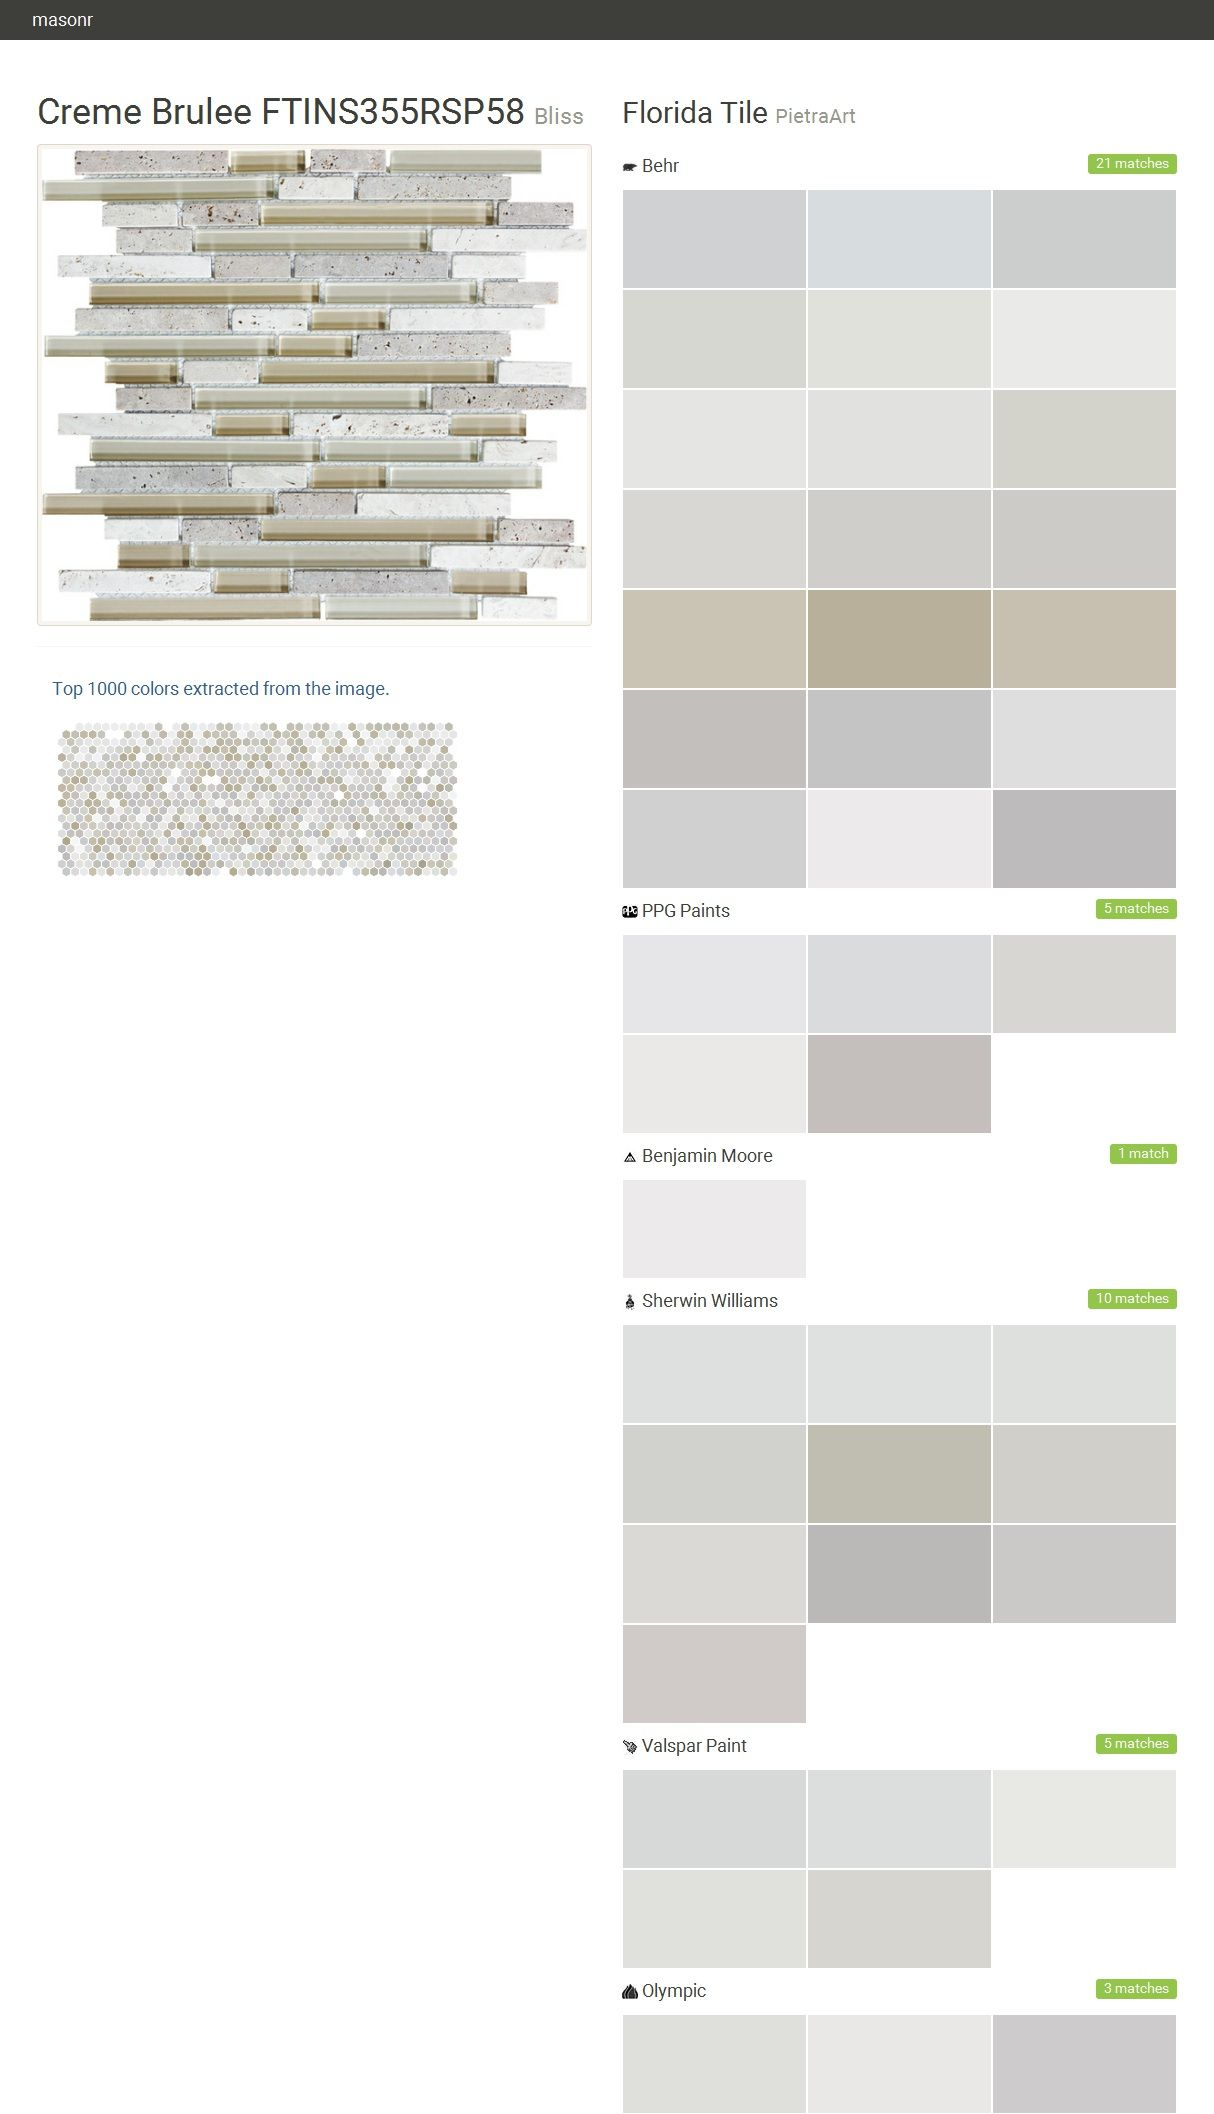 found it at wayfair marmi di napoli deco liner 4 x 12 resin tile in creme brulee master bathroom tile pinterest creme brulee bathroom tiling and - Benjamin Moore Creme Brulee